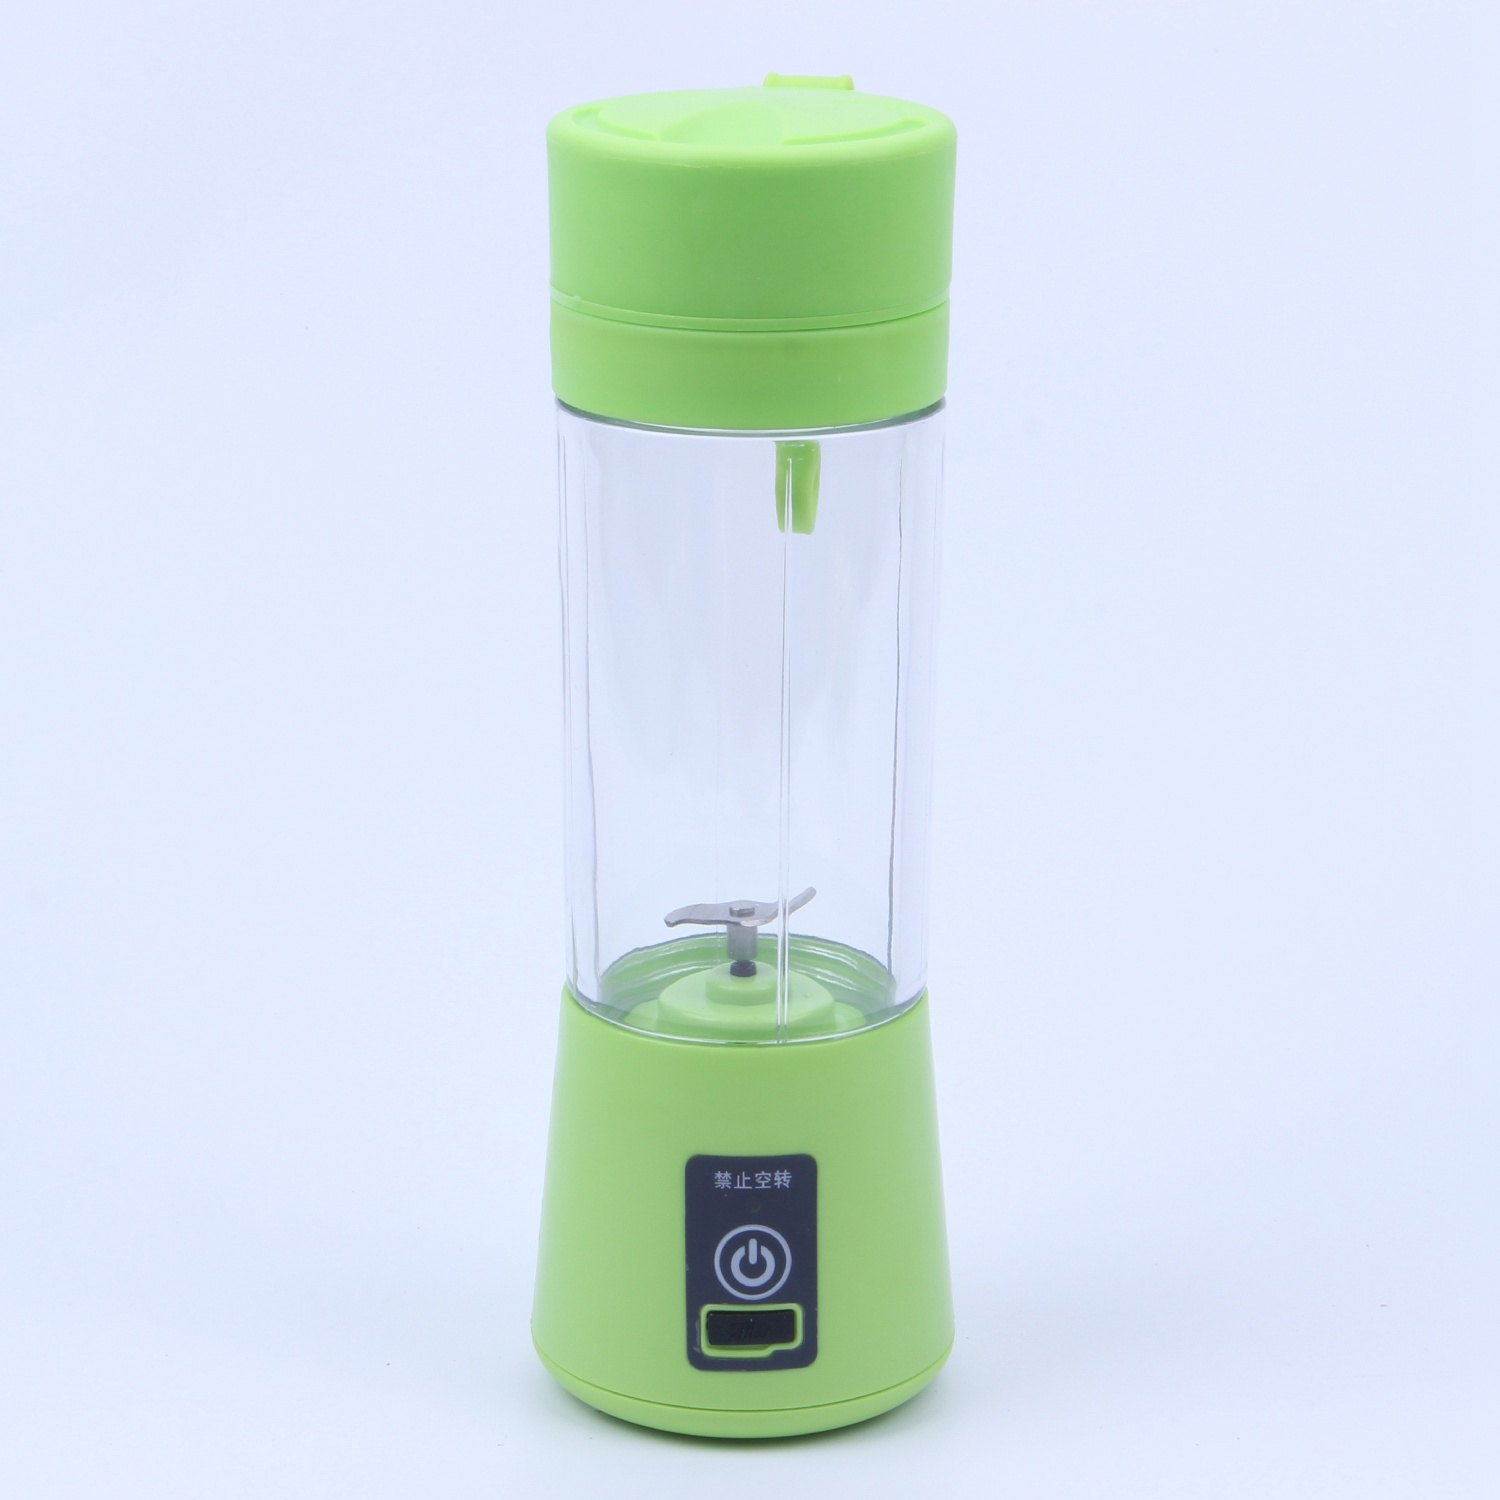 380ML Blender USB Charging Mode Portable Small Juicer Extractor Household Whisk Fruits Mixer Juice Machine Smoothie Maker 2